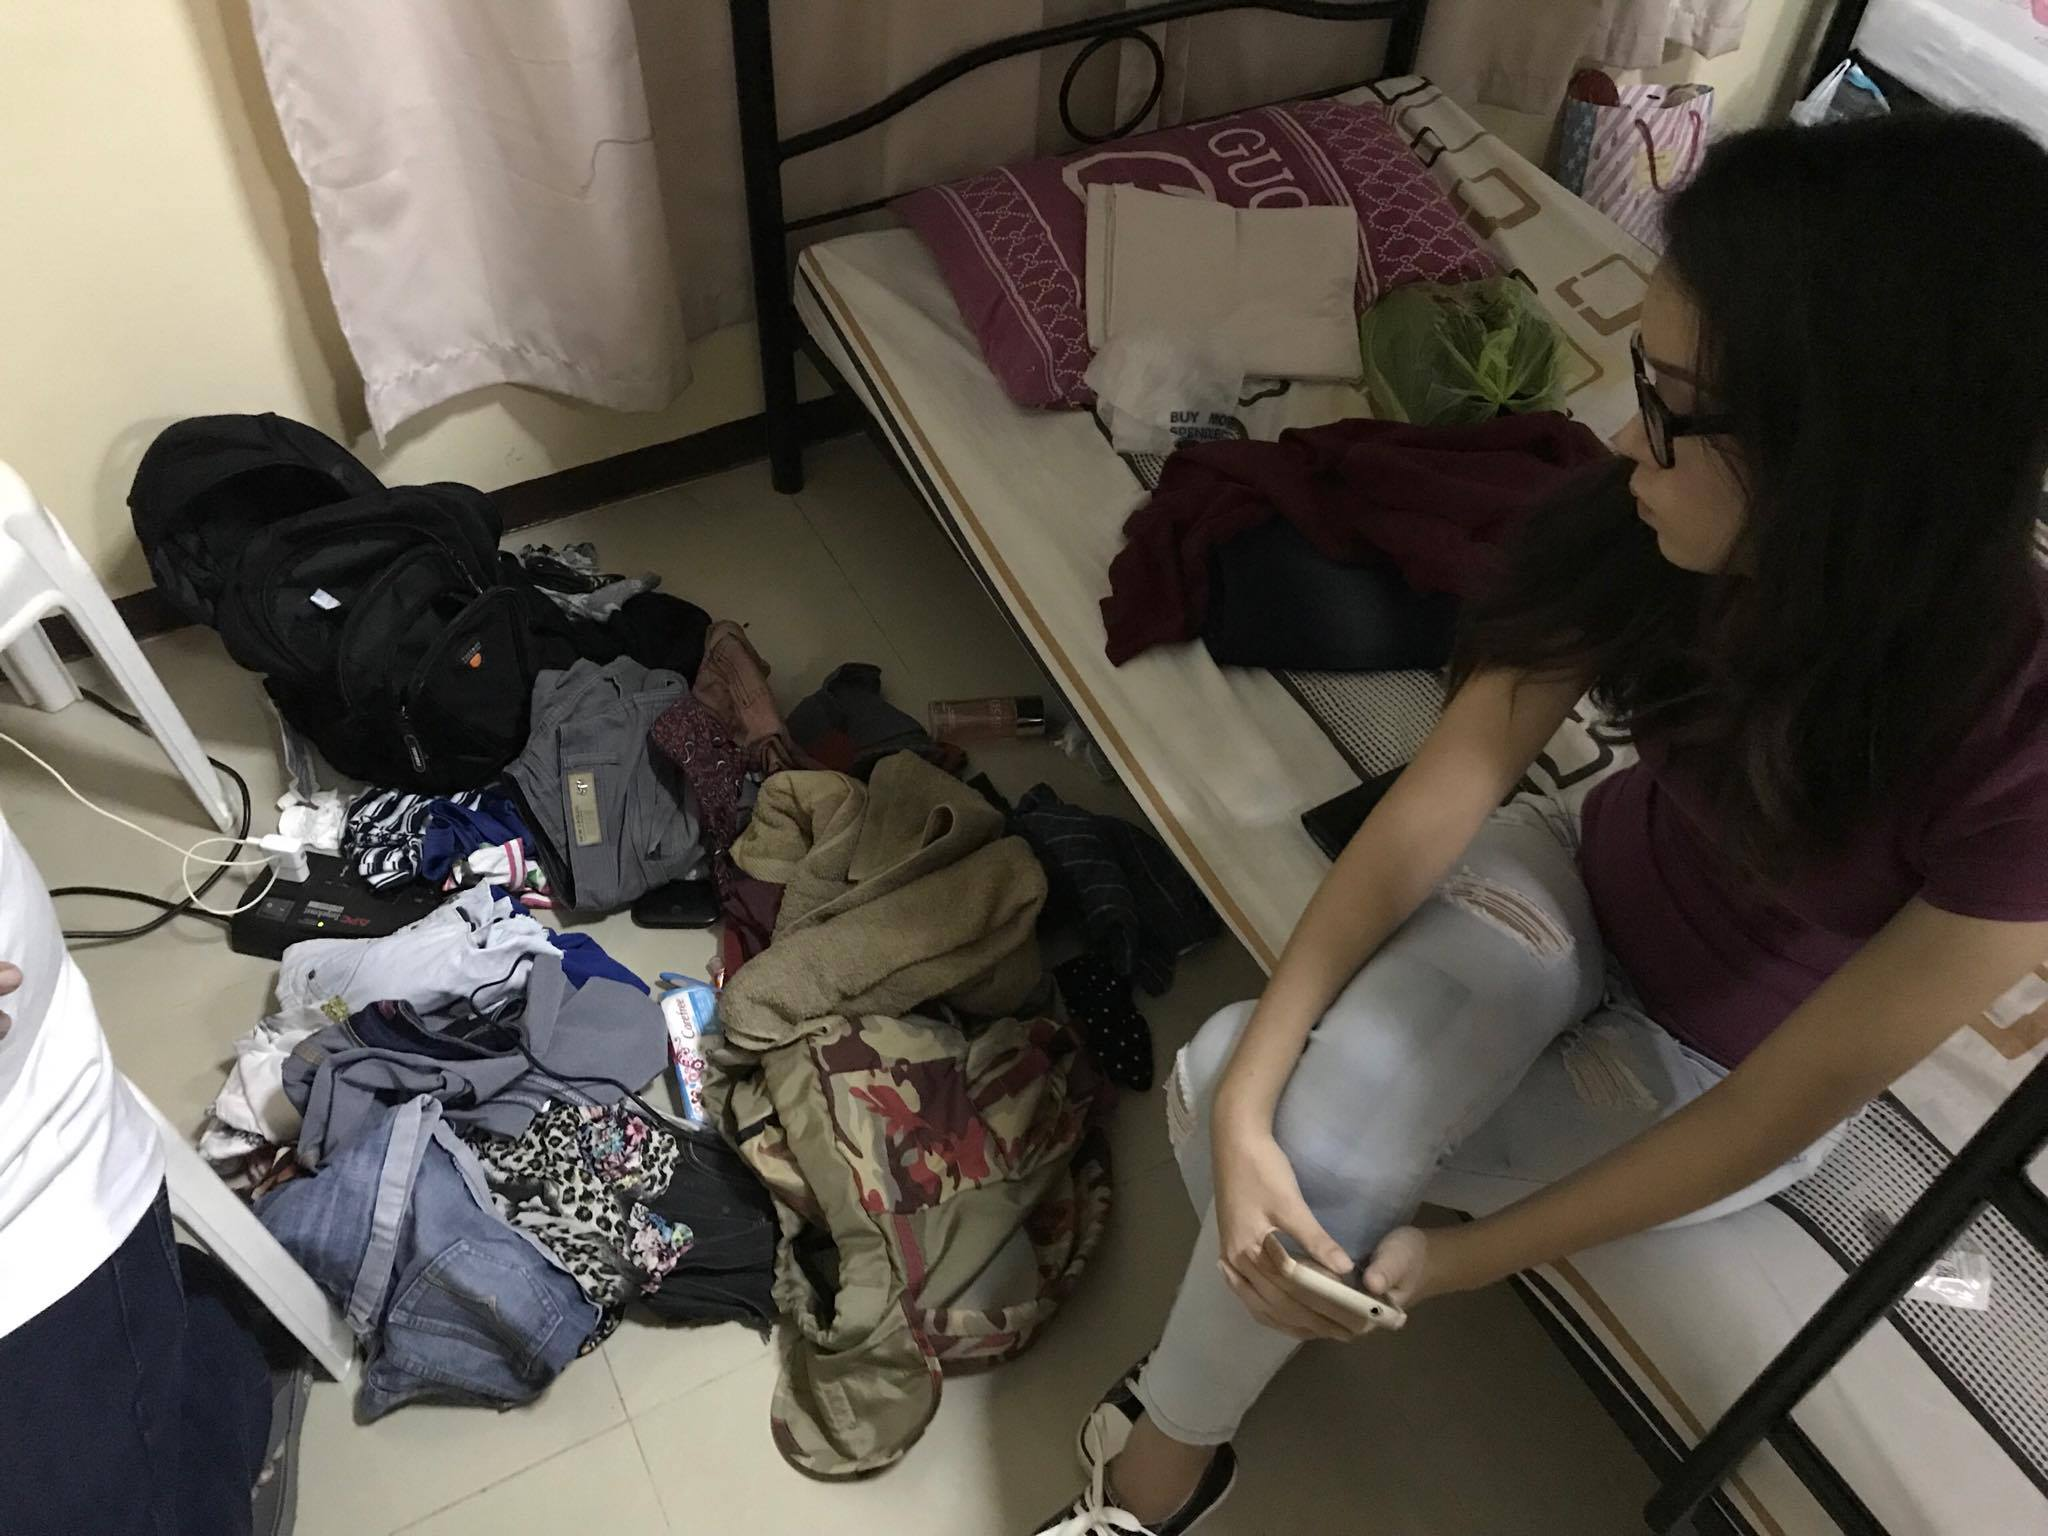 BURGLARIZED. Mr. SCUAA candidate, Reigndoulf Quirong's belongings strewn in the floor after being looted. Photo by Jed Asaph Cortes